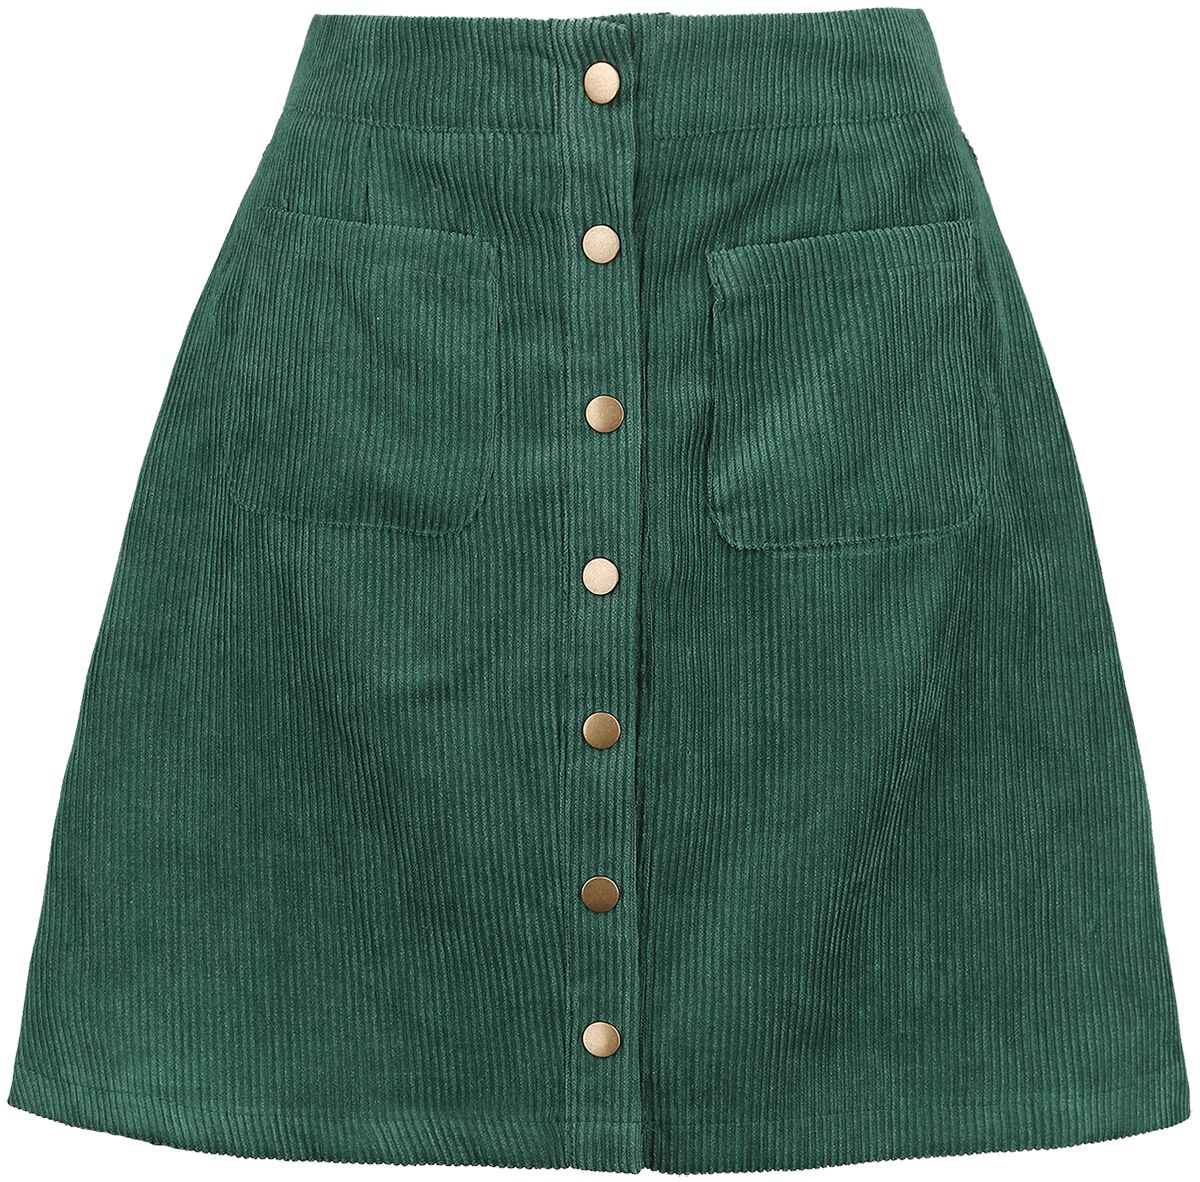 Image of   Banned Alternative Cord Skirt Minikjole grøn